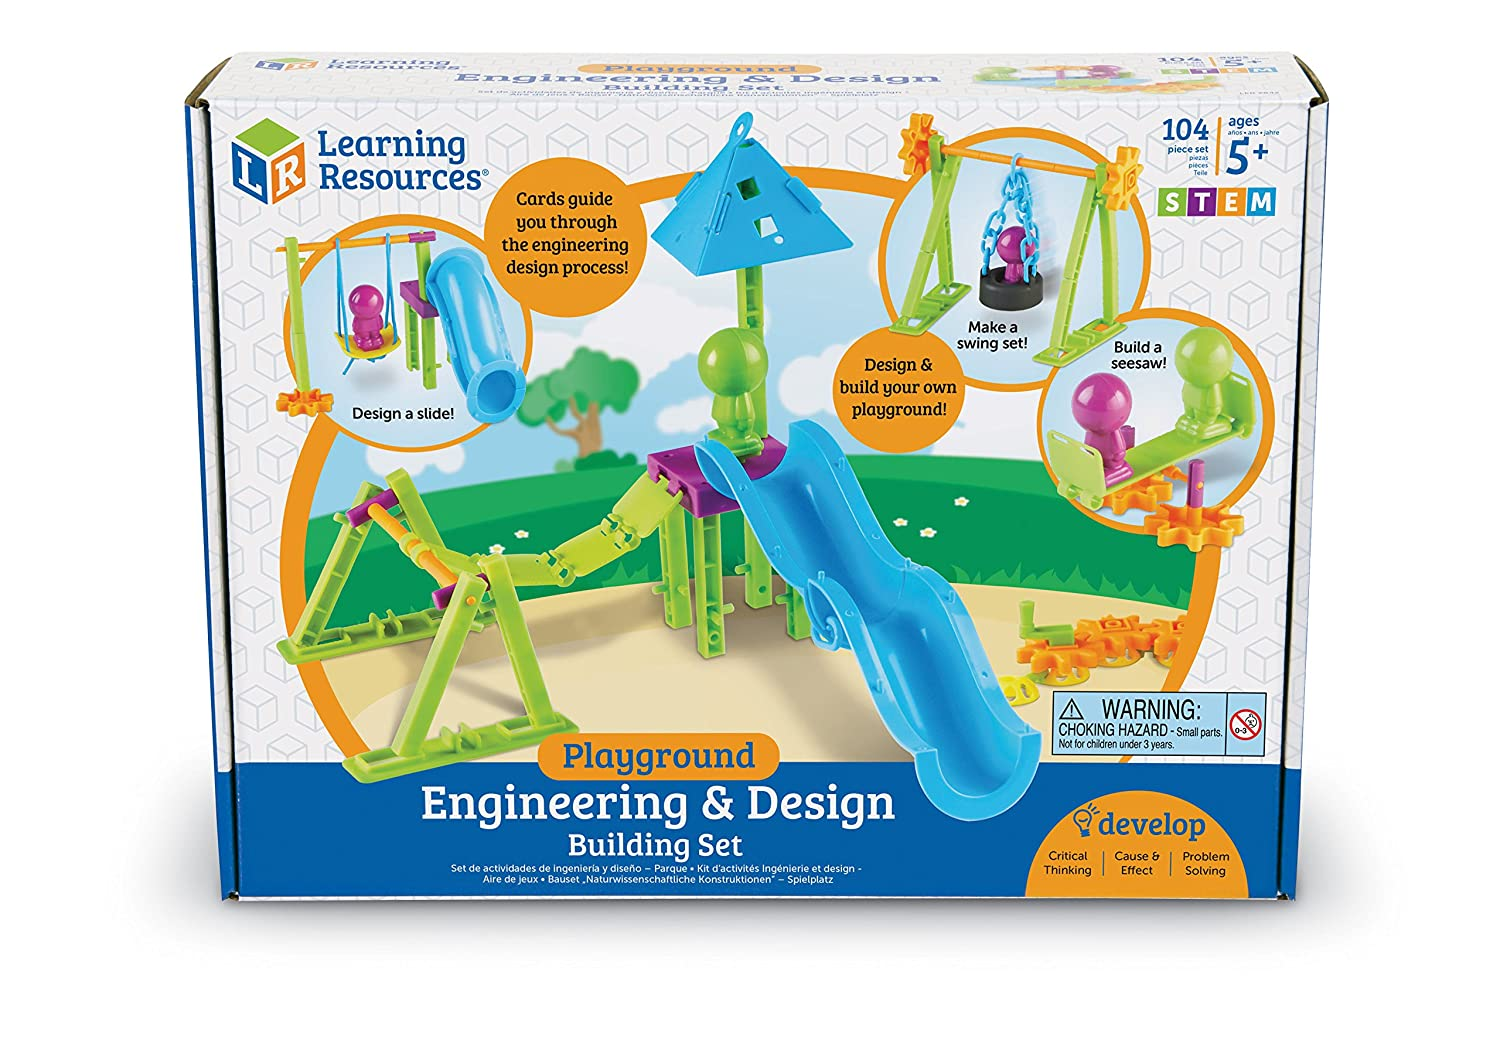 Engineering and design - Amazon Com Learning Resources Playground Engineering Design Stem Set 104 Pieces Toys Games